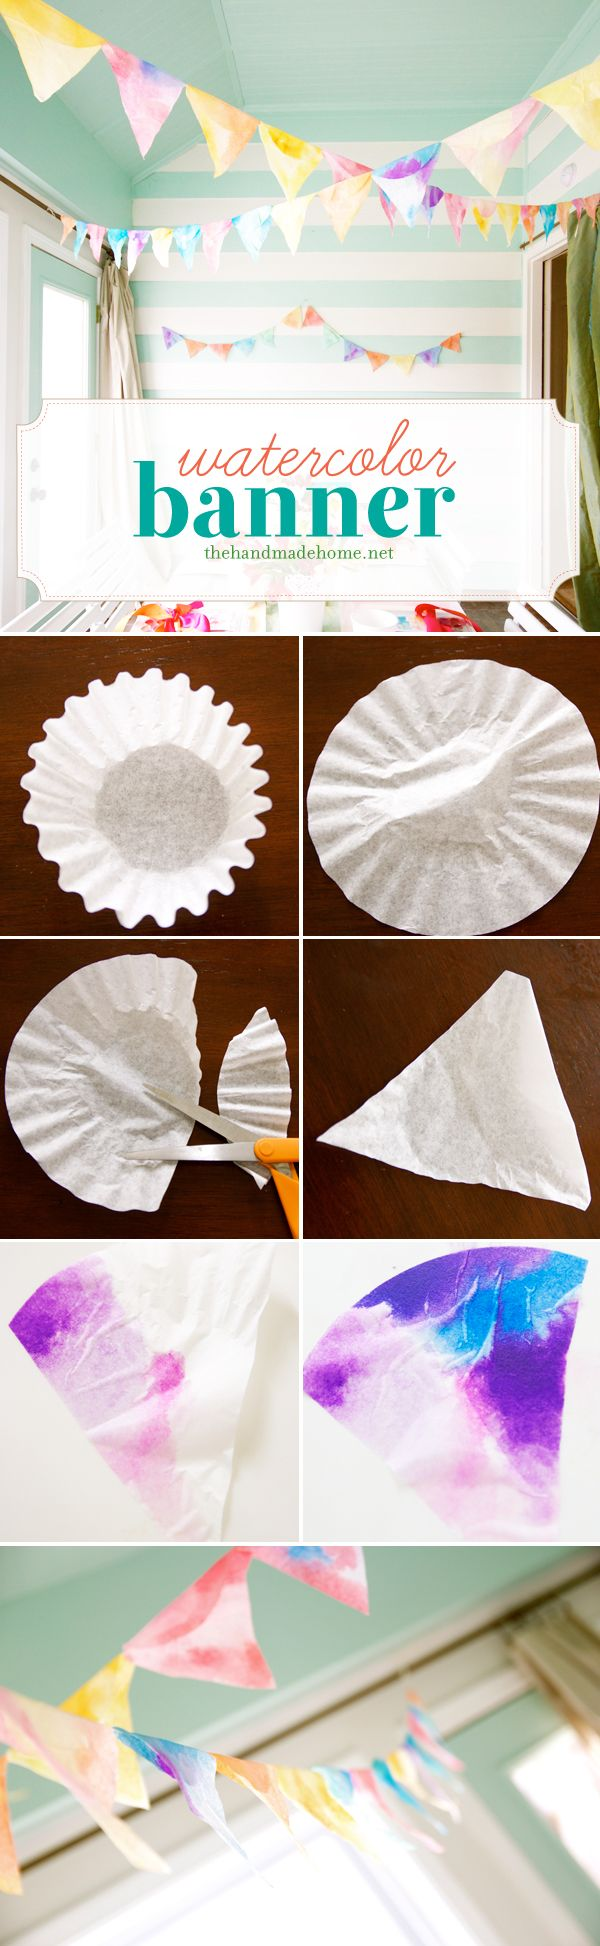 Make a beautiful watercolor banner by painting coffee filters and cutting them into triangles. LOVE this! What a great idea for kids!